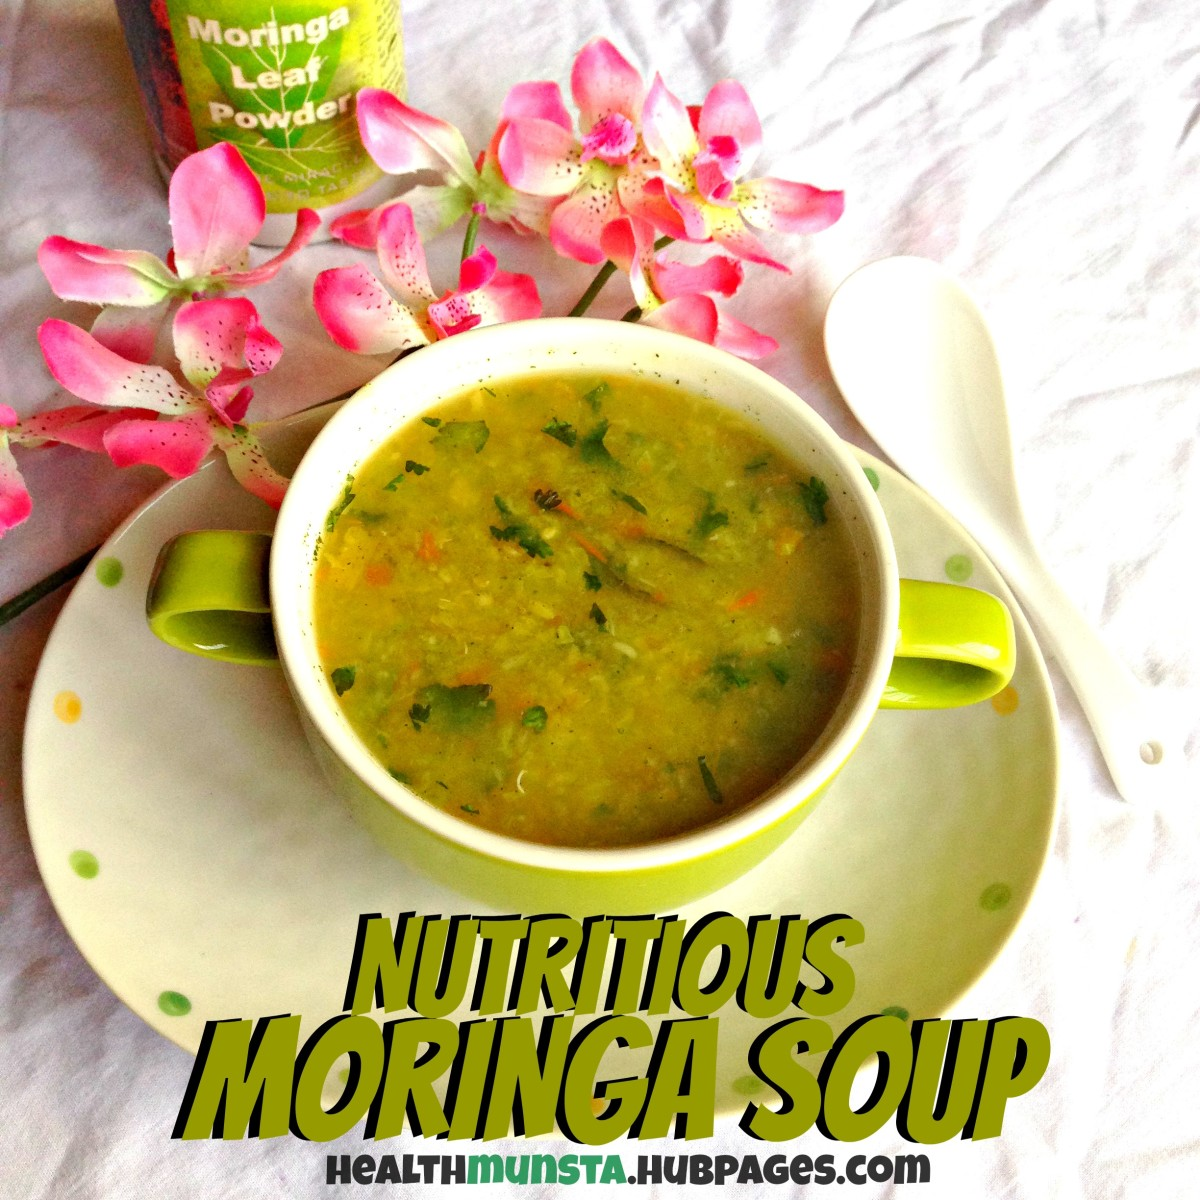 Moringa is a miracle food and healer that can easily be incorporated into soups so you can enjoy its wholesome benefits!